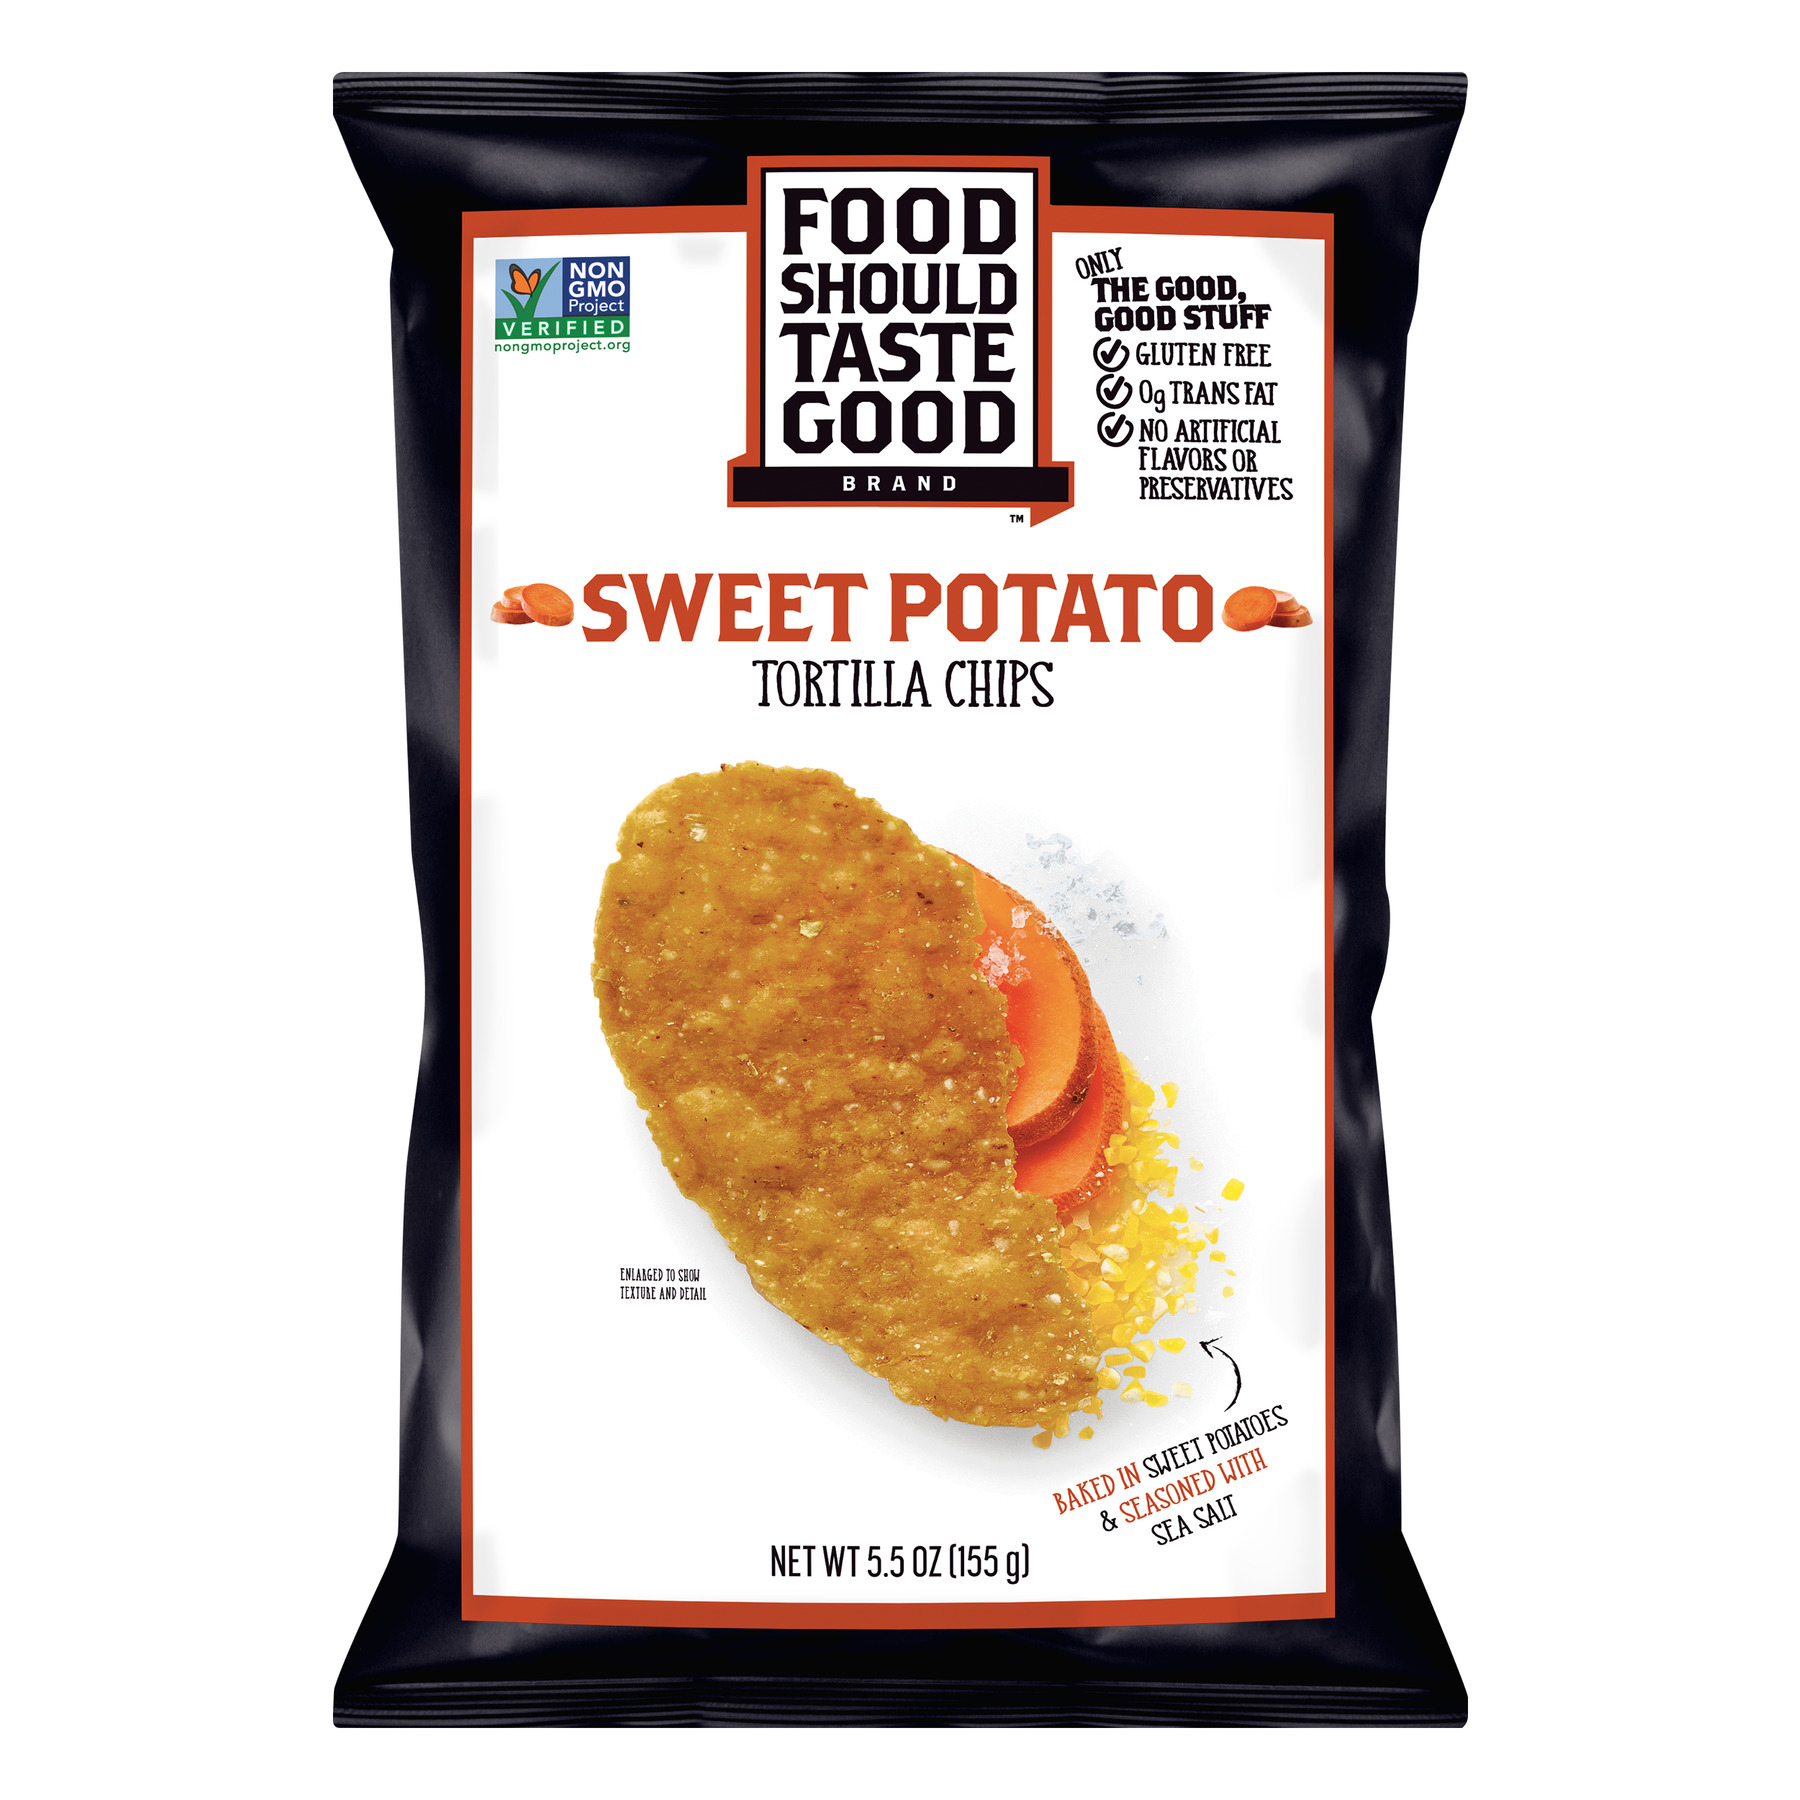 Food Should Taste Good Sweet Potato Tortilla Chips, 5.5 oz